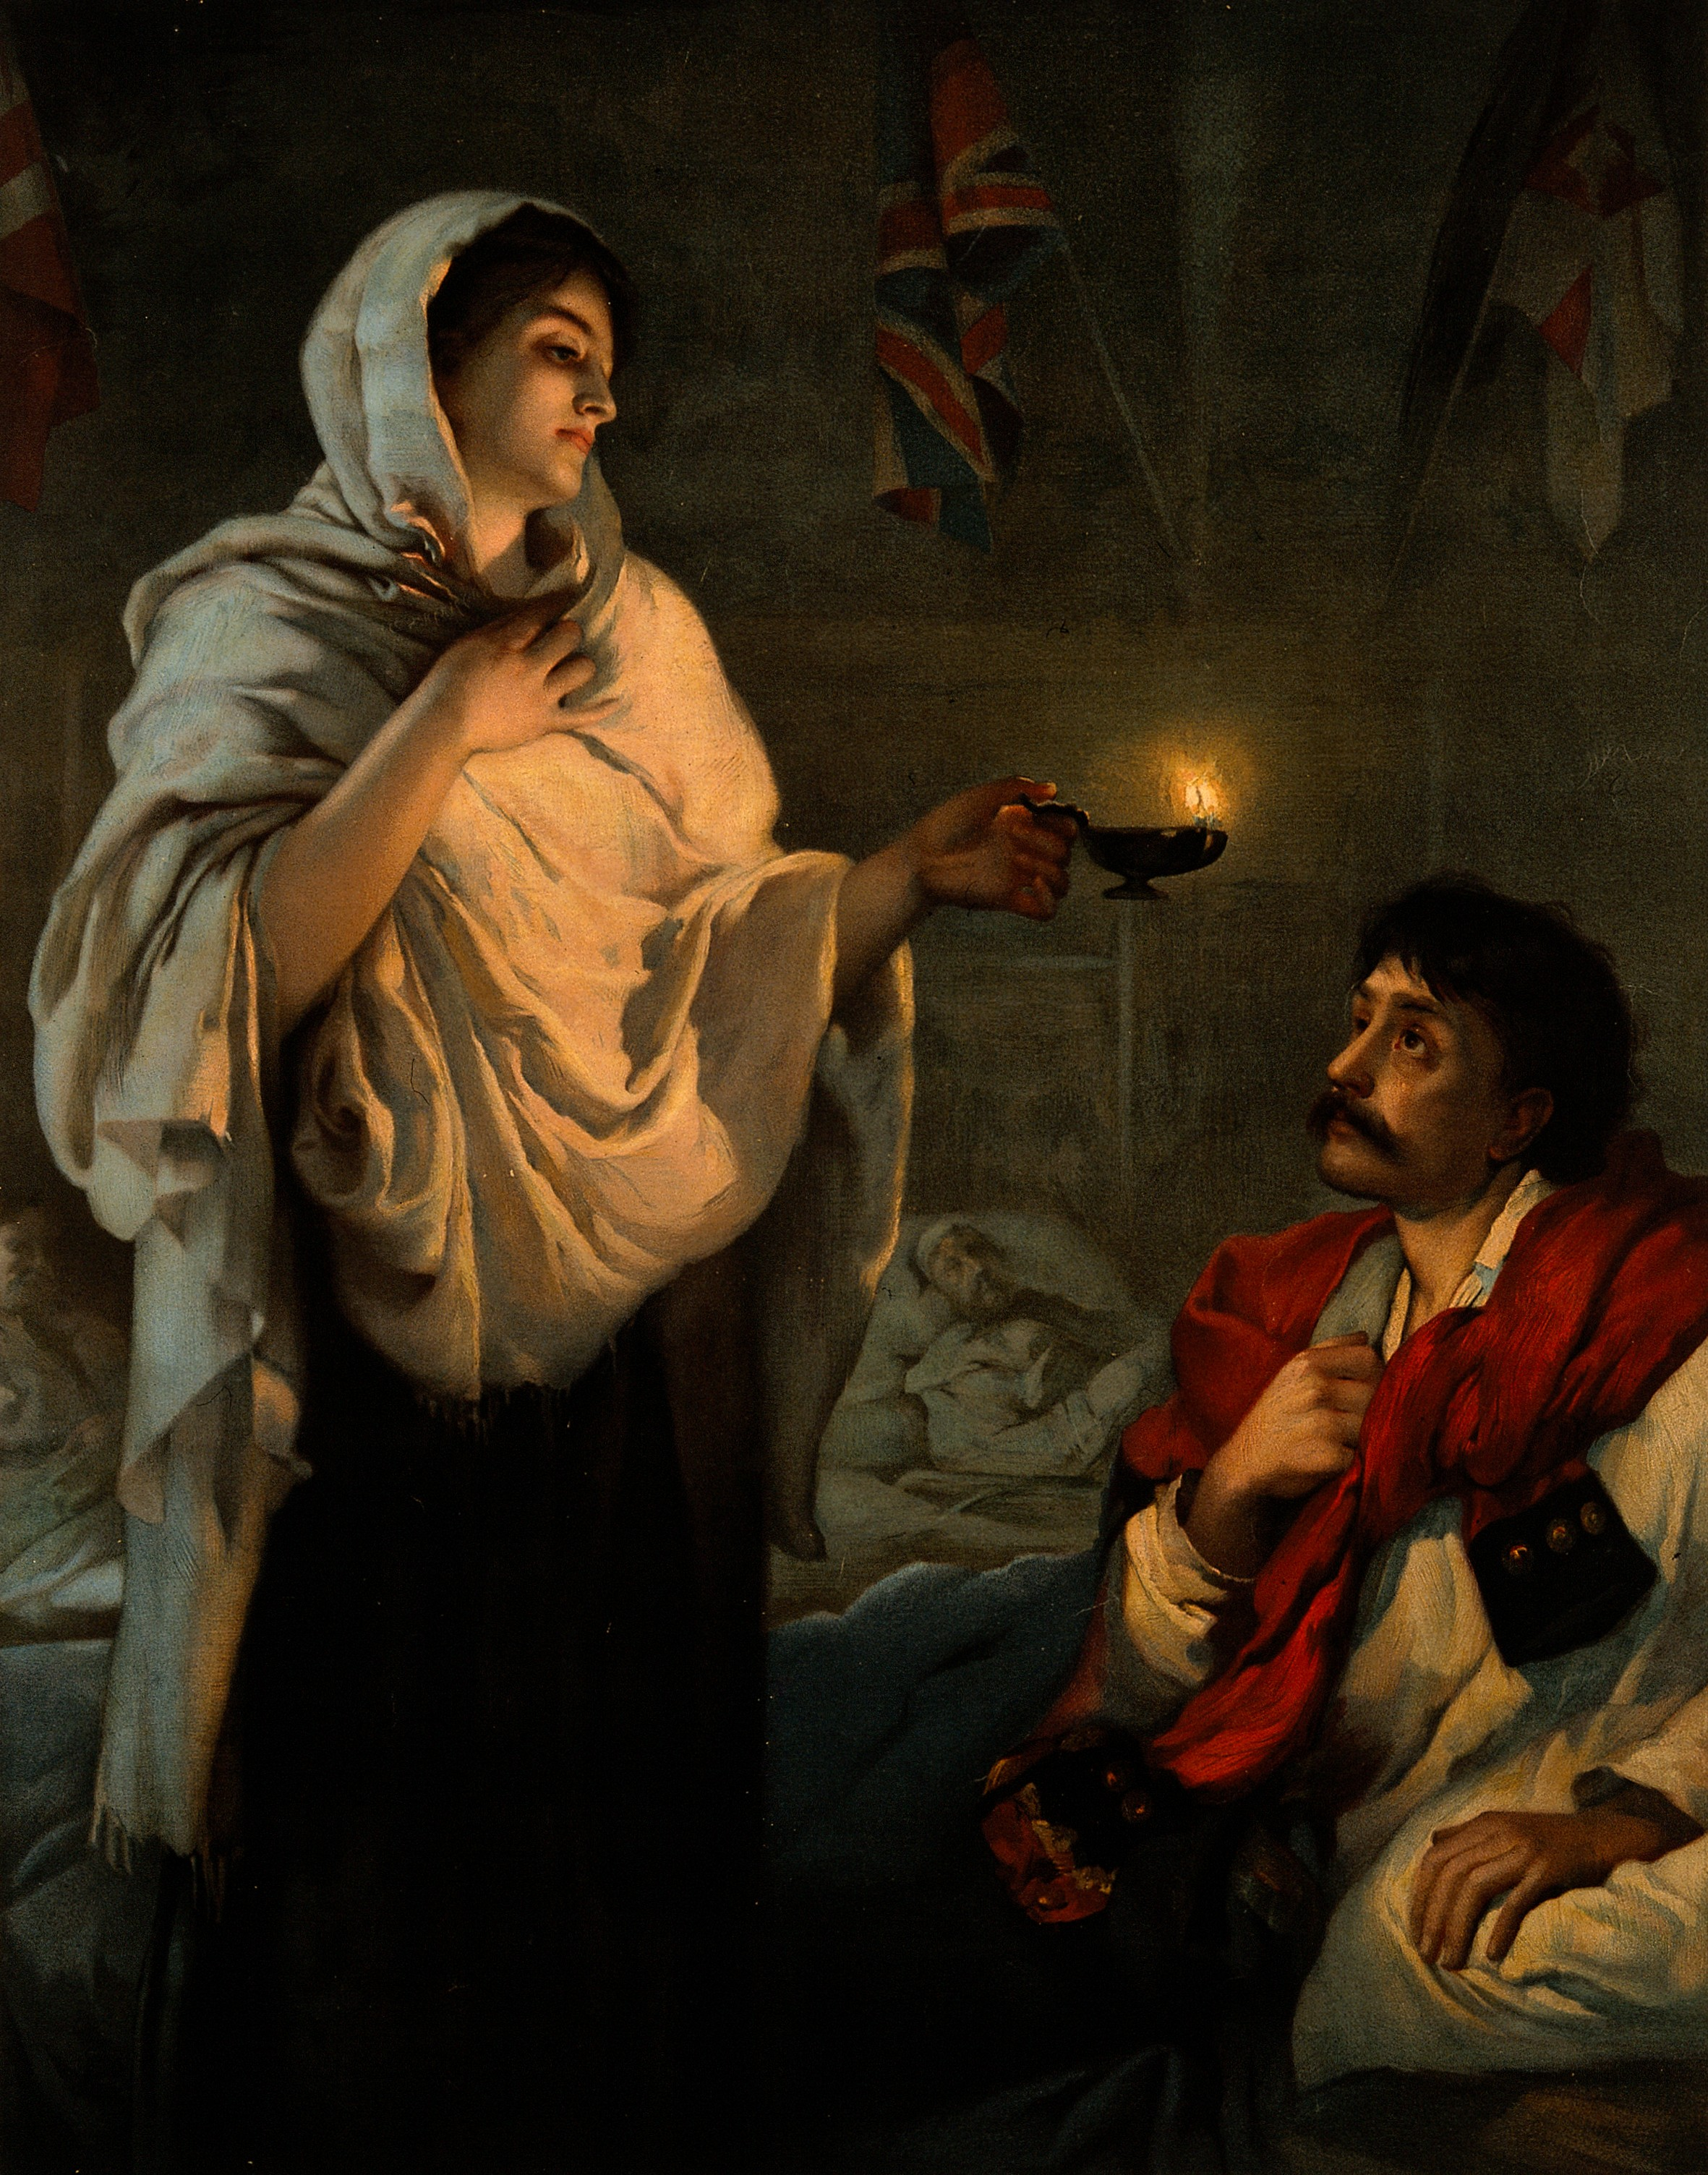 The Lady with the Lamp. Popular lithograph reproduction of a painting of Nightingale by Henrietta Rae, 1891.